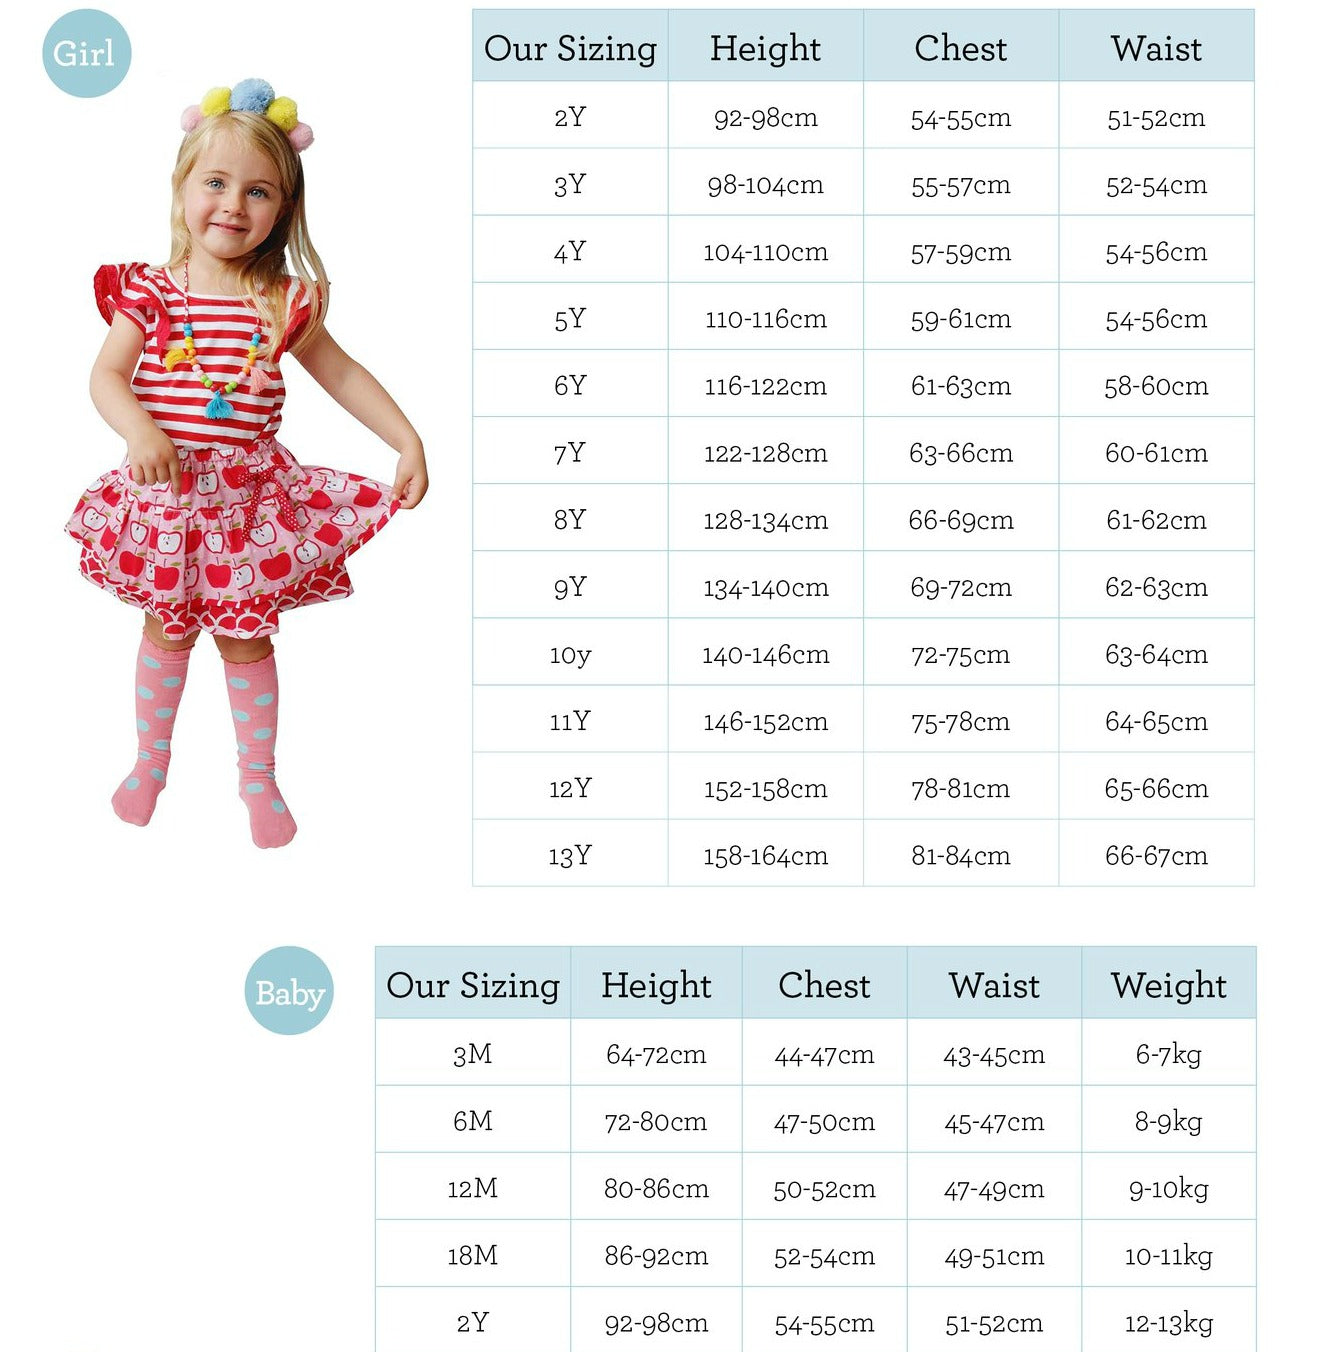 Size Guide & Care Instructions | Oobi Girls Kid Fashion